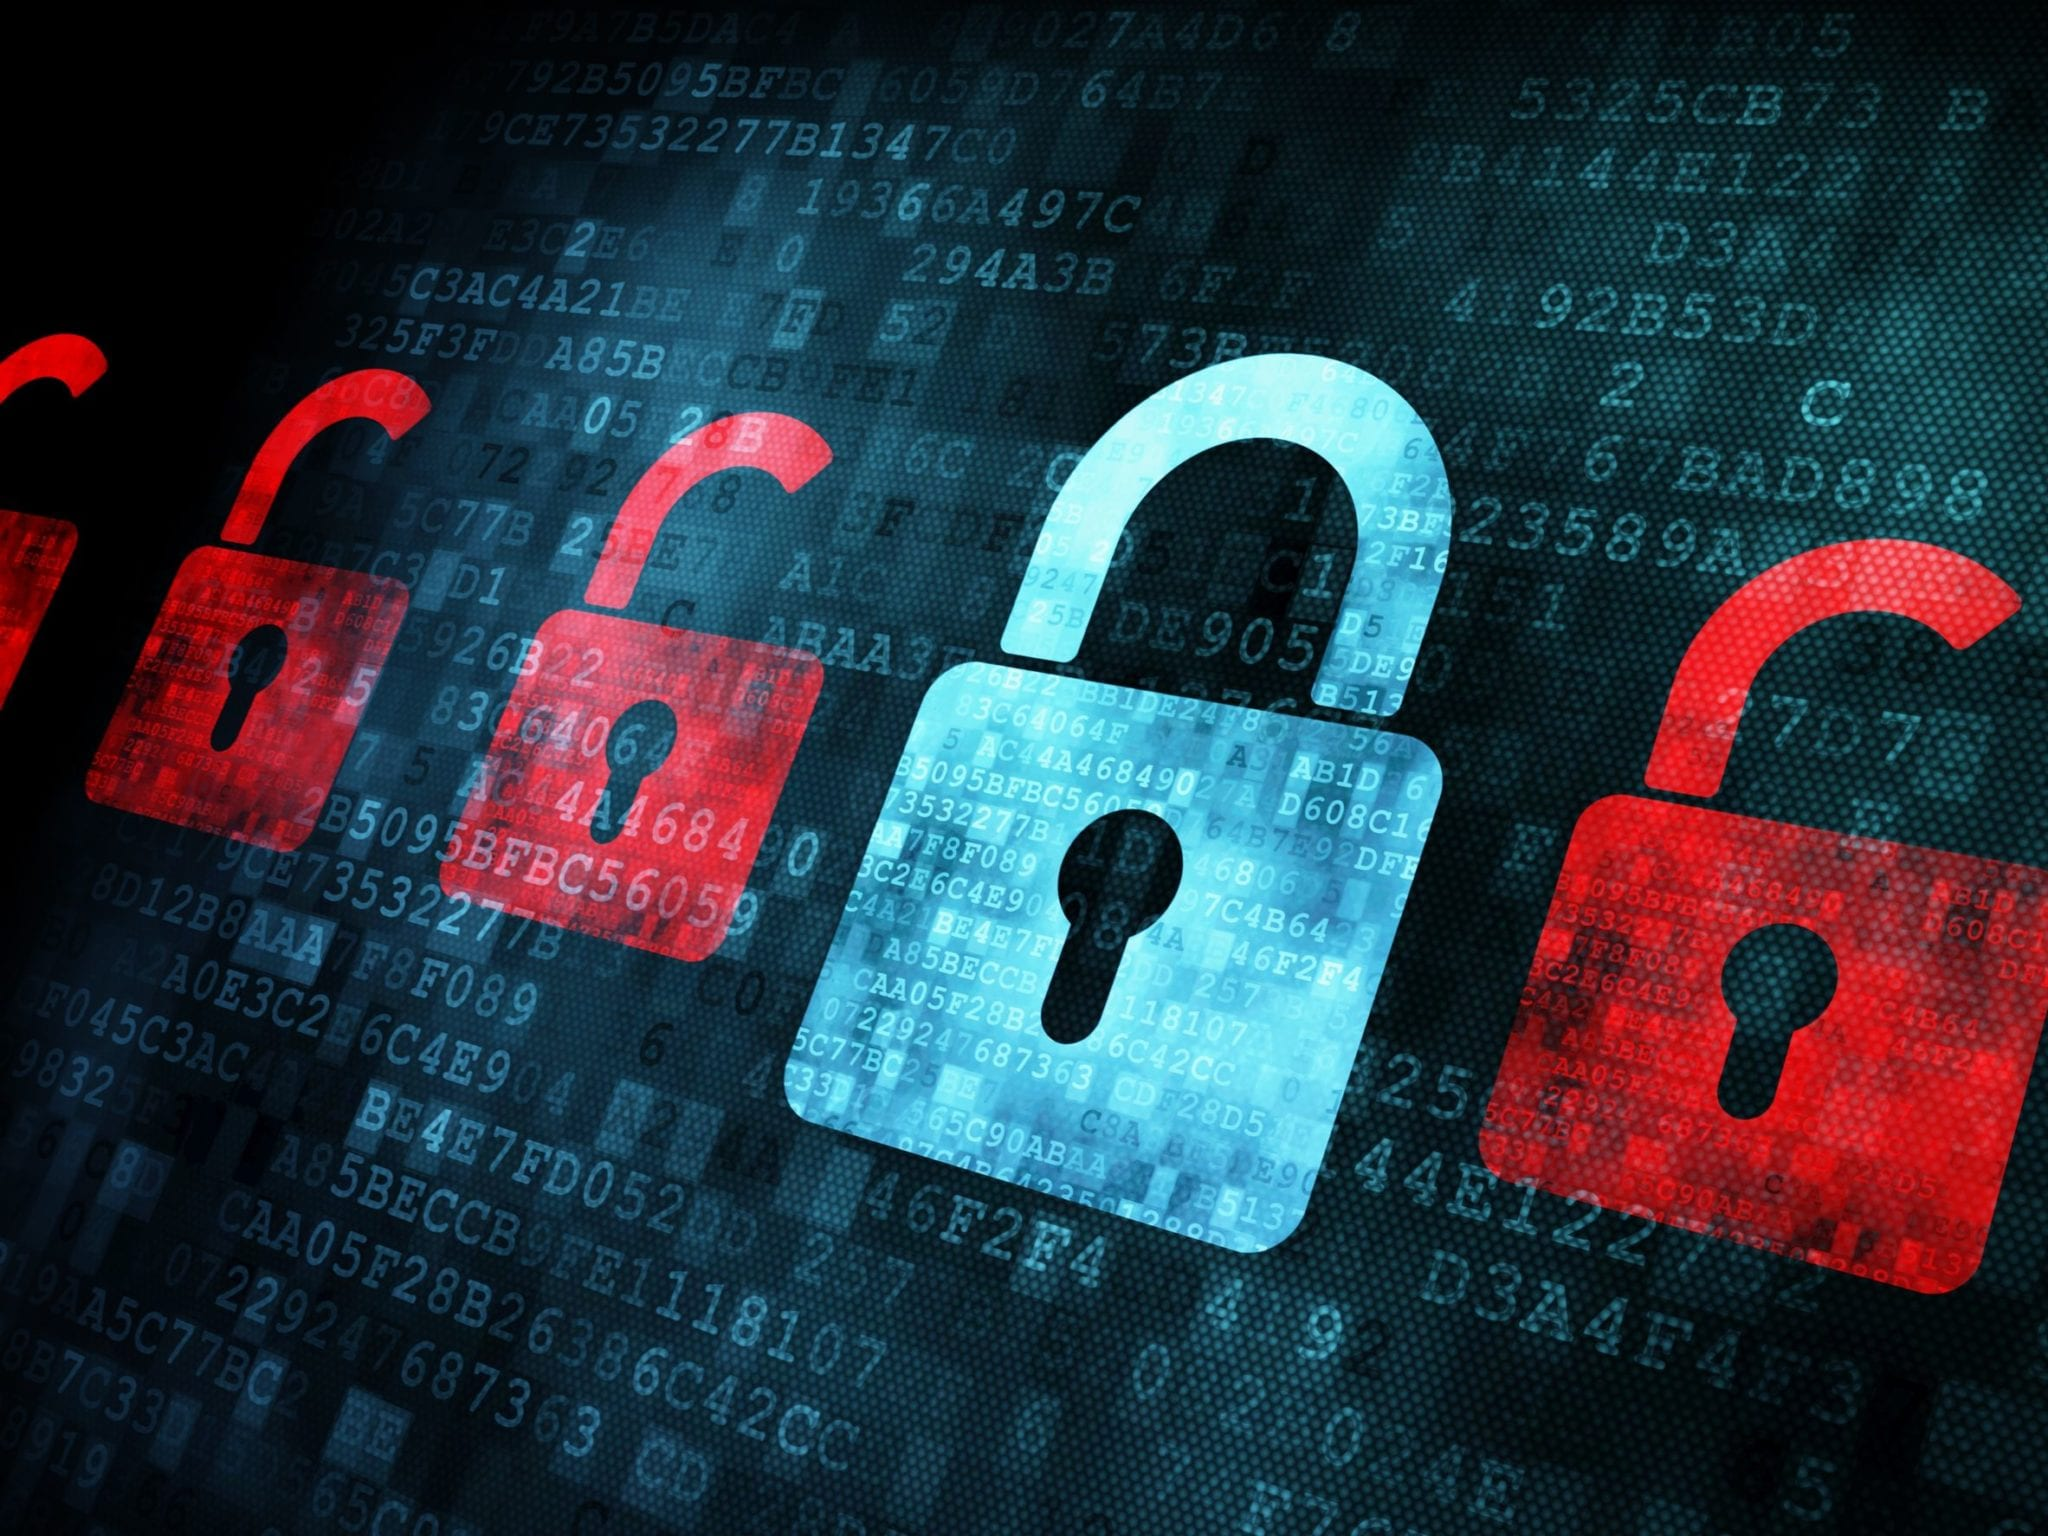 Cellular IoT device security--What challenges does this